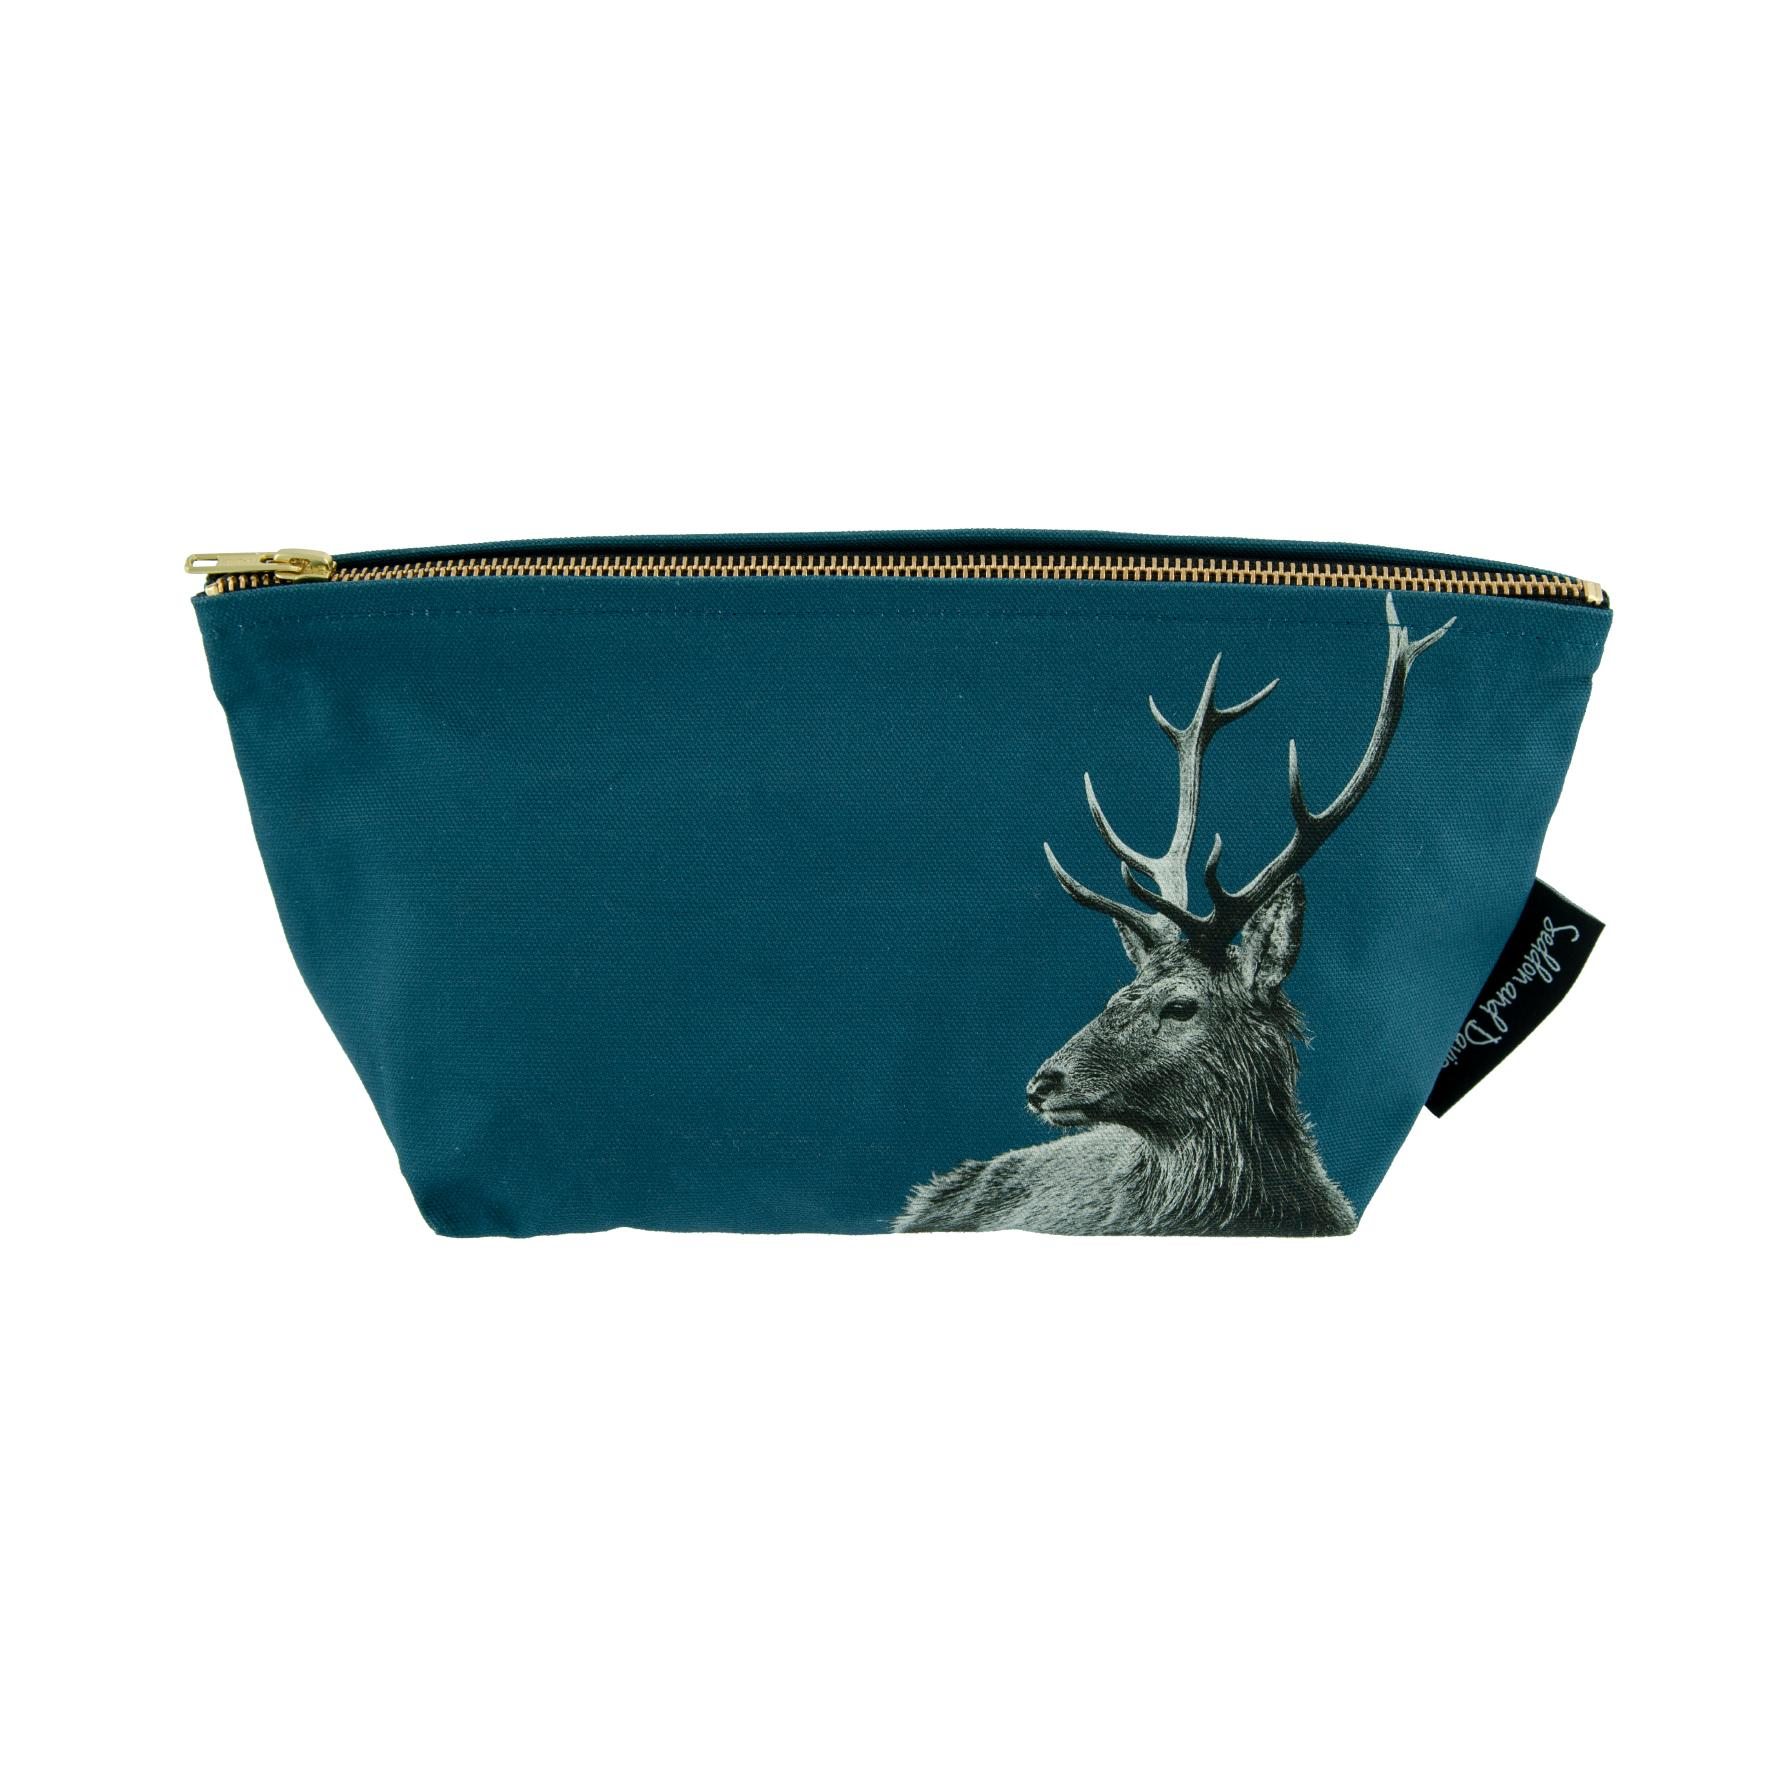 Highland stag wash bag on indigo